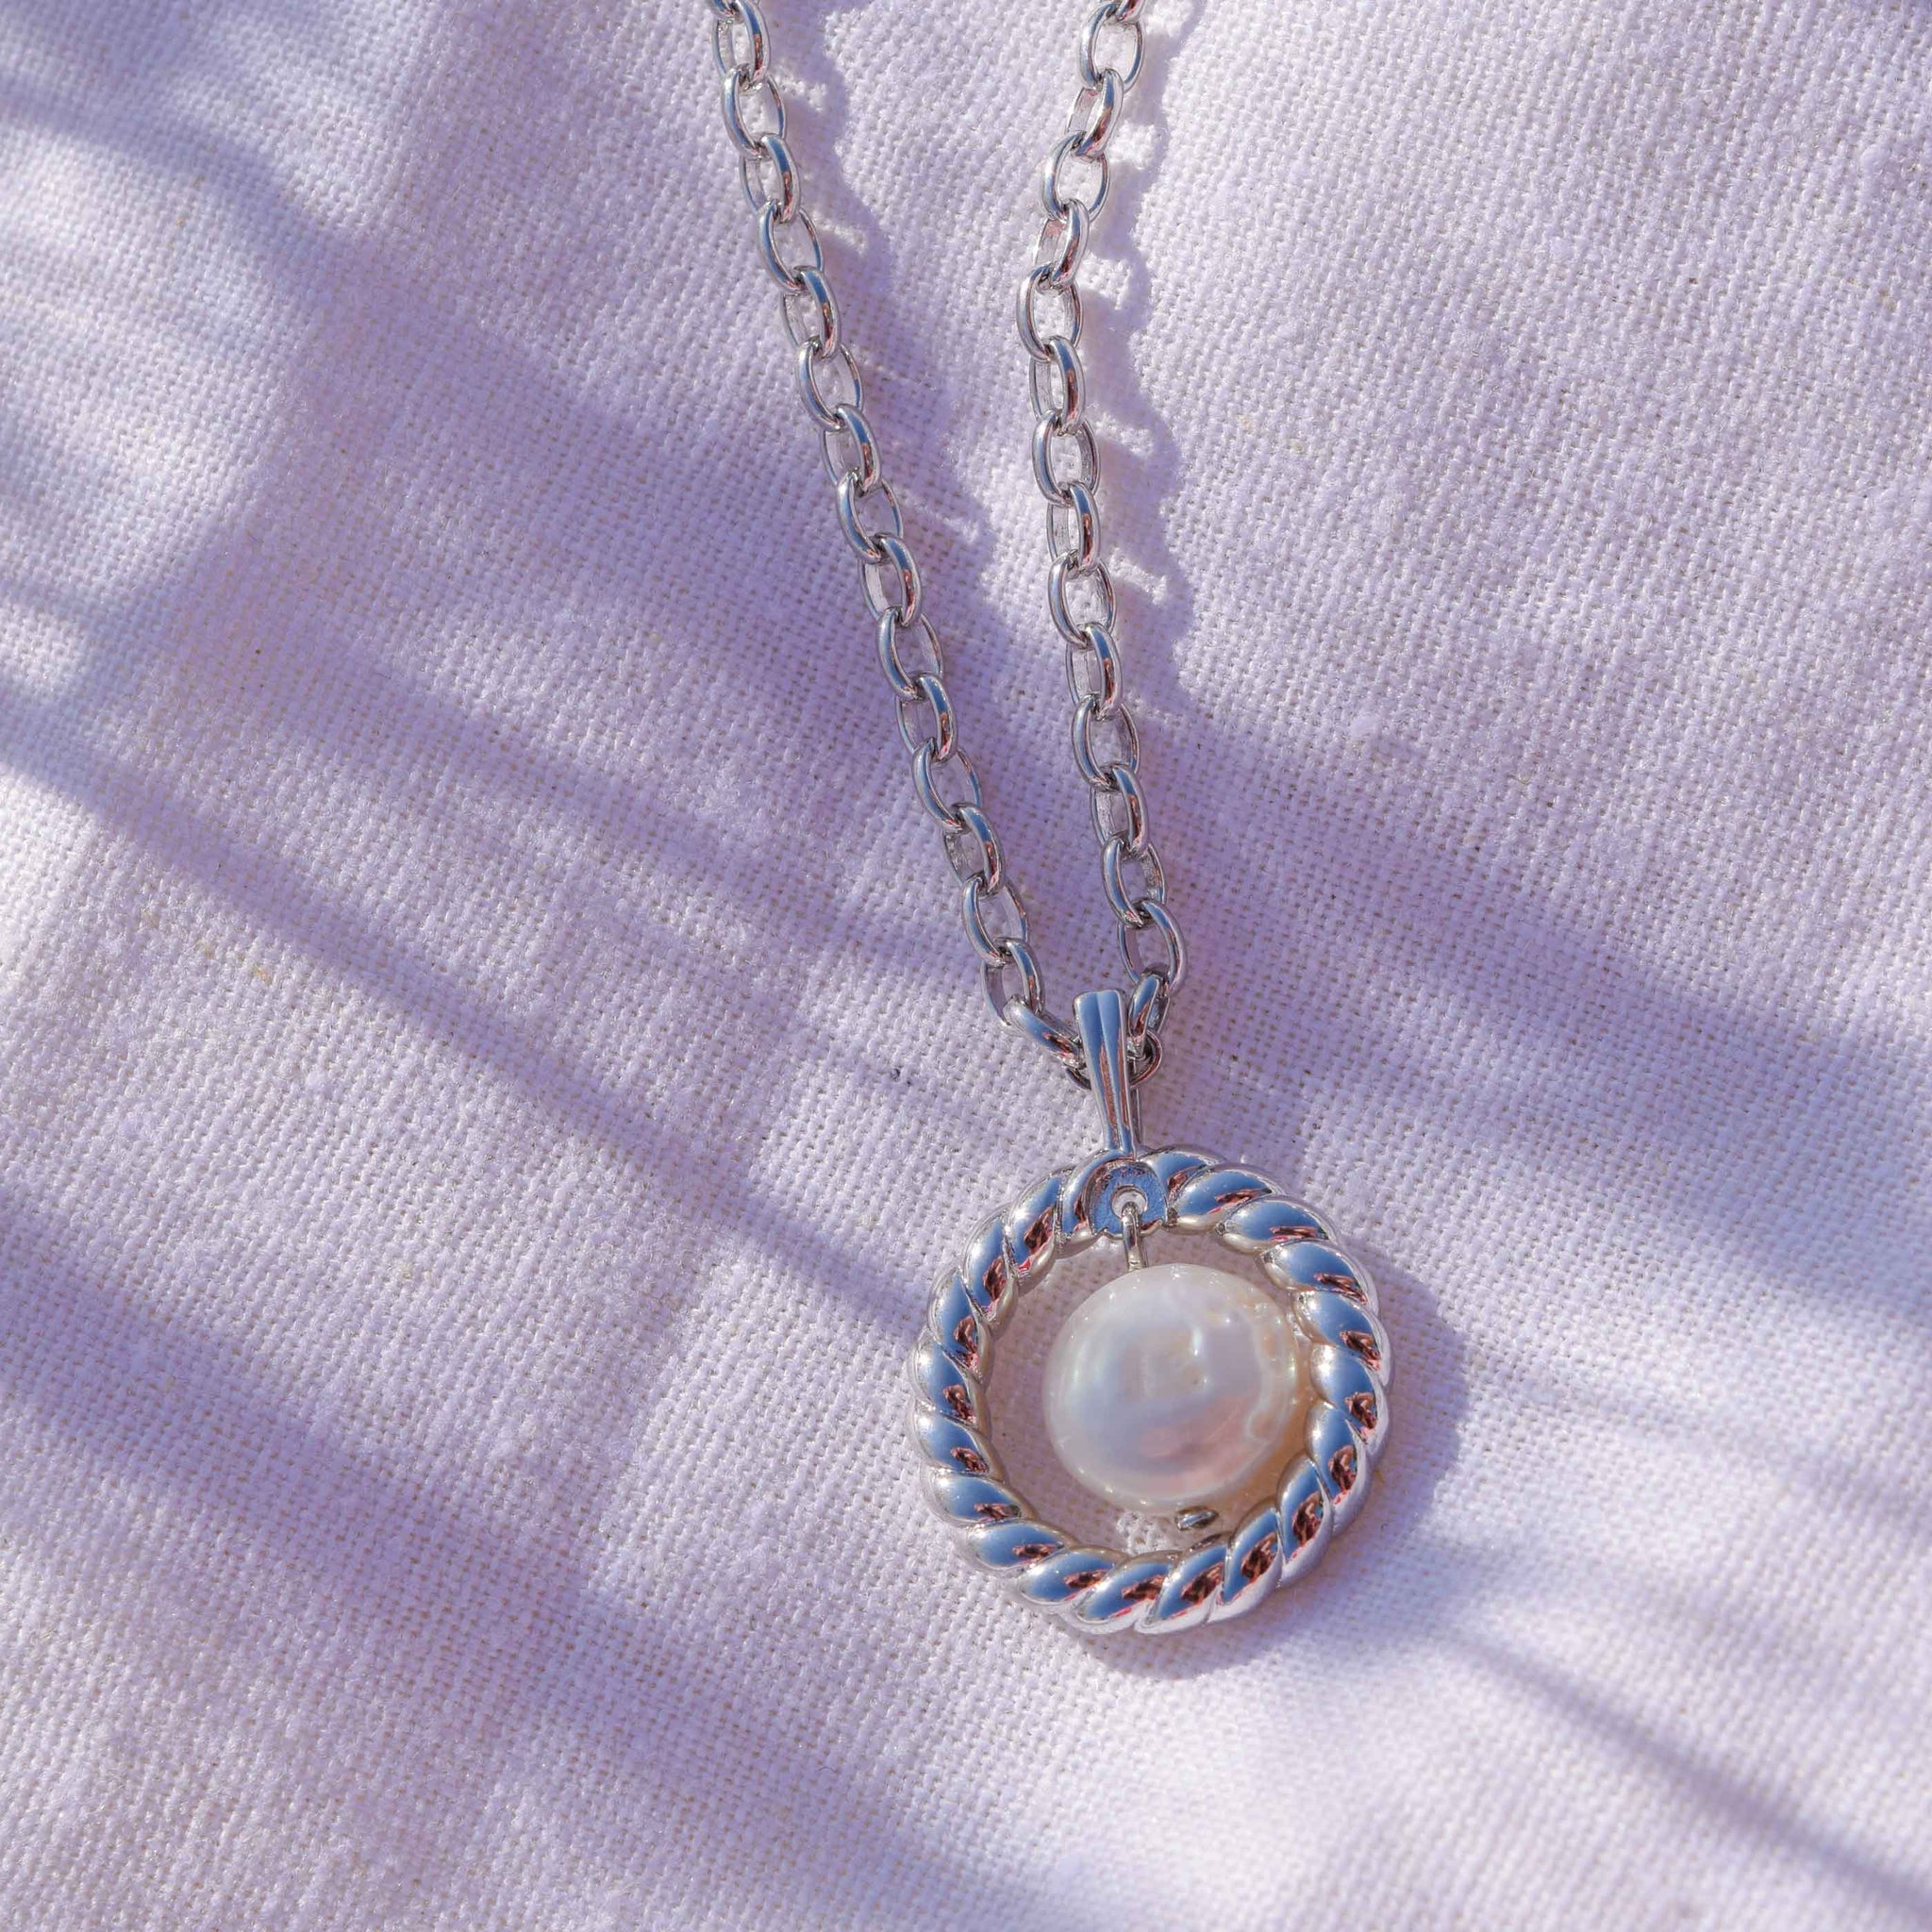 Rope & Pearl Pendant Necklace in Silver